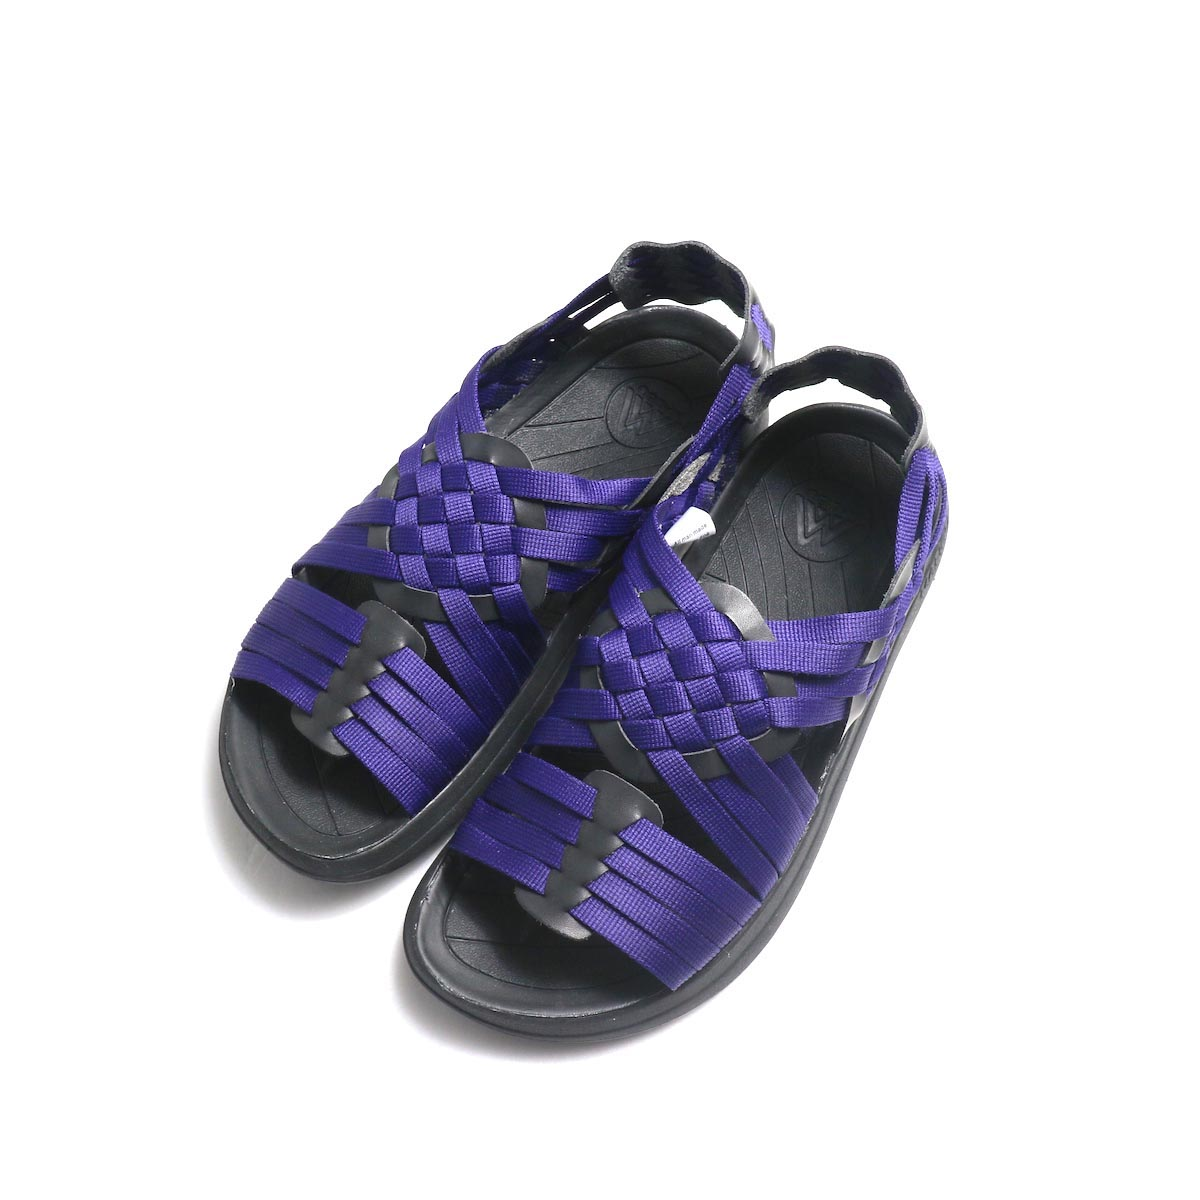 Malibu Sandals / Canyon (Nylon Weave) -Purple